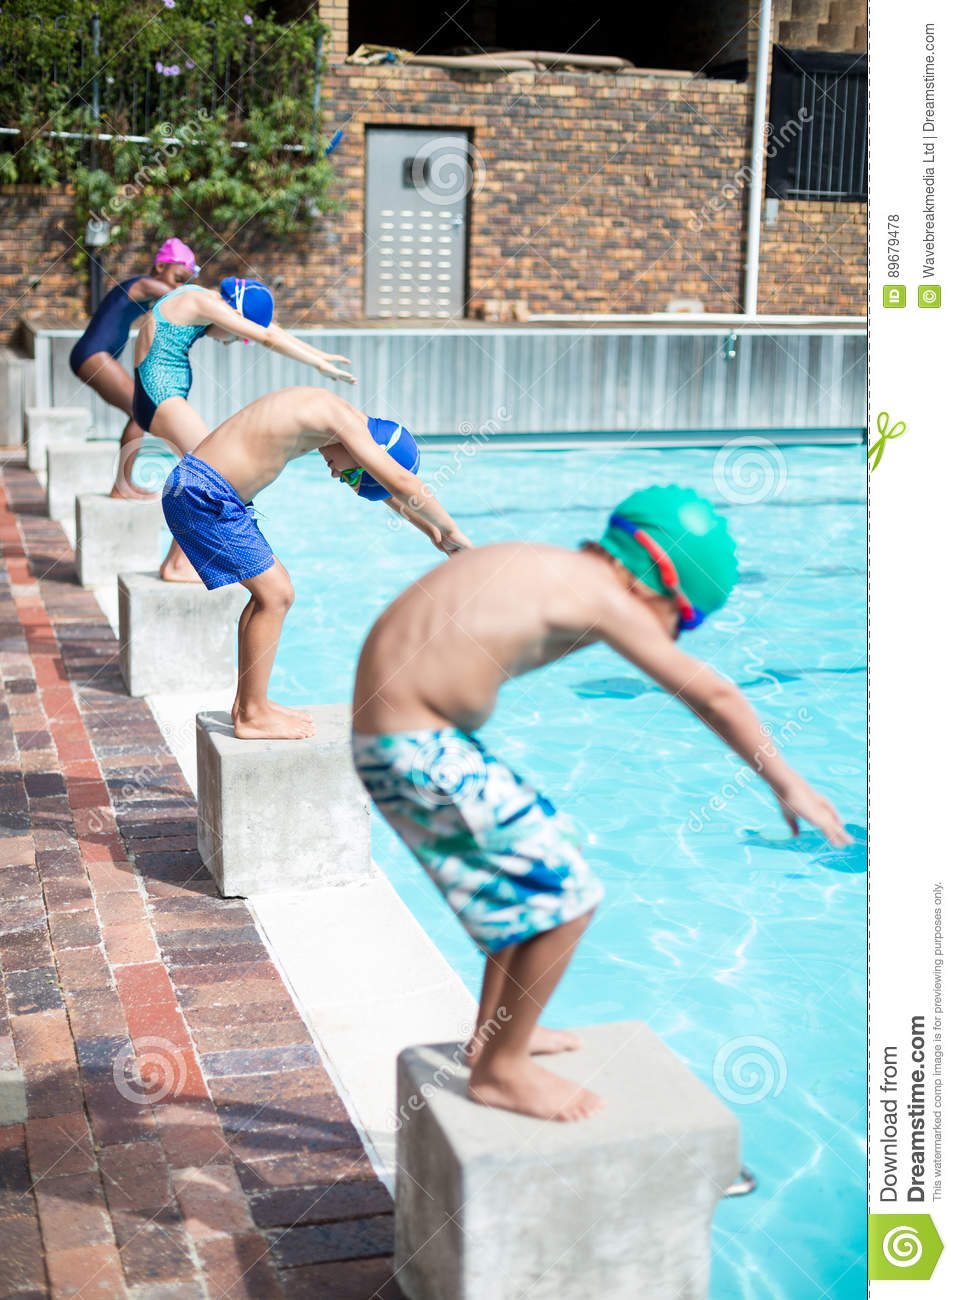 swimmers taking position to jump in swimming pool stock photo image of leisure caucasian. Black Bedroom Furniture Sets. Home Design Ideas